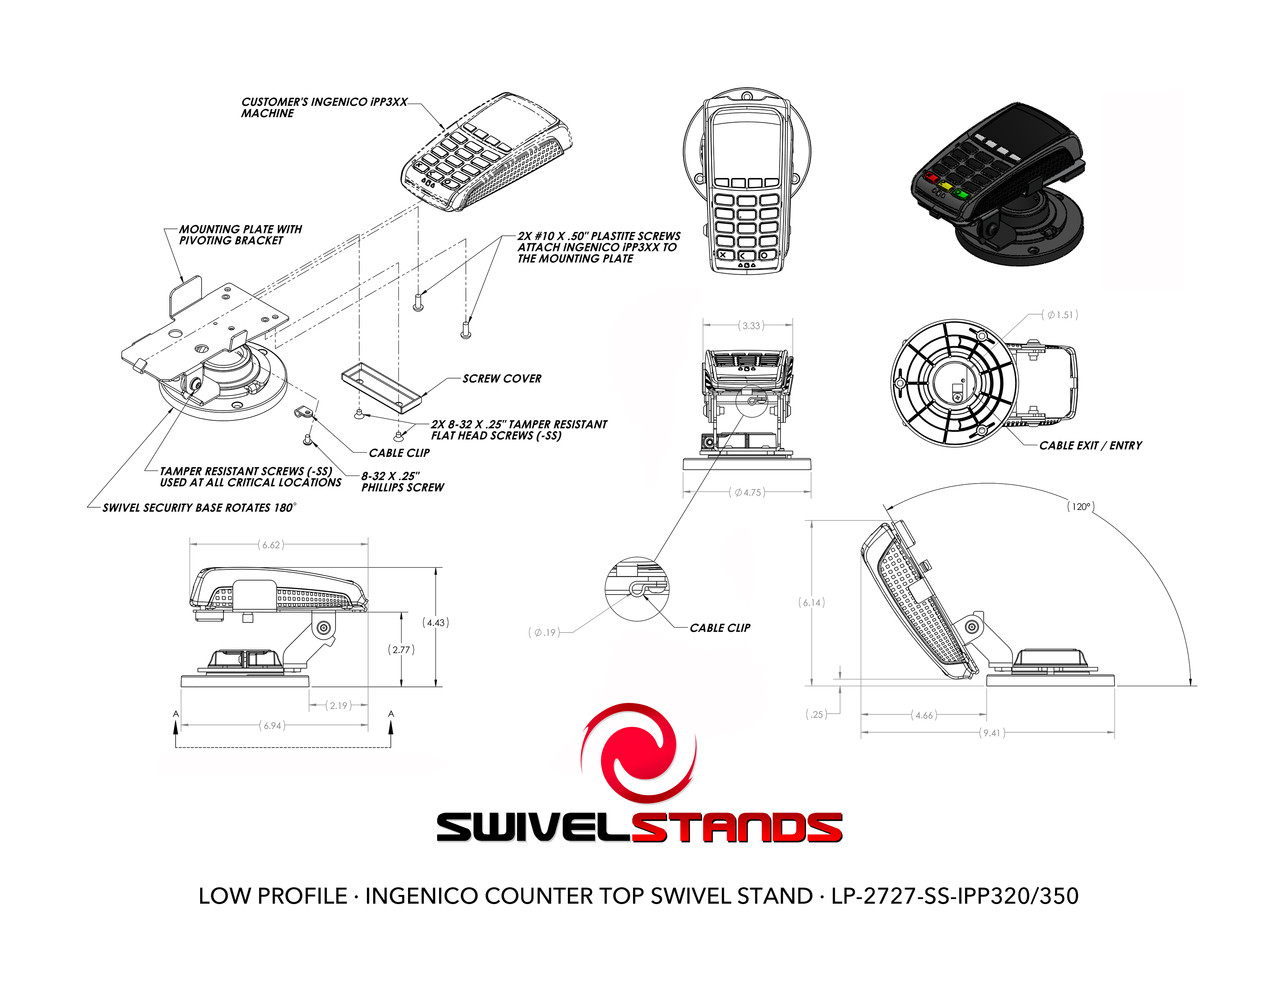 Swivel Stands Credit Card Stand Low Profile Ingenico iPP350 with Security Screws